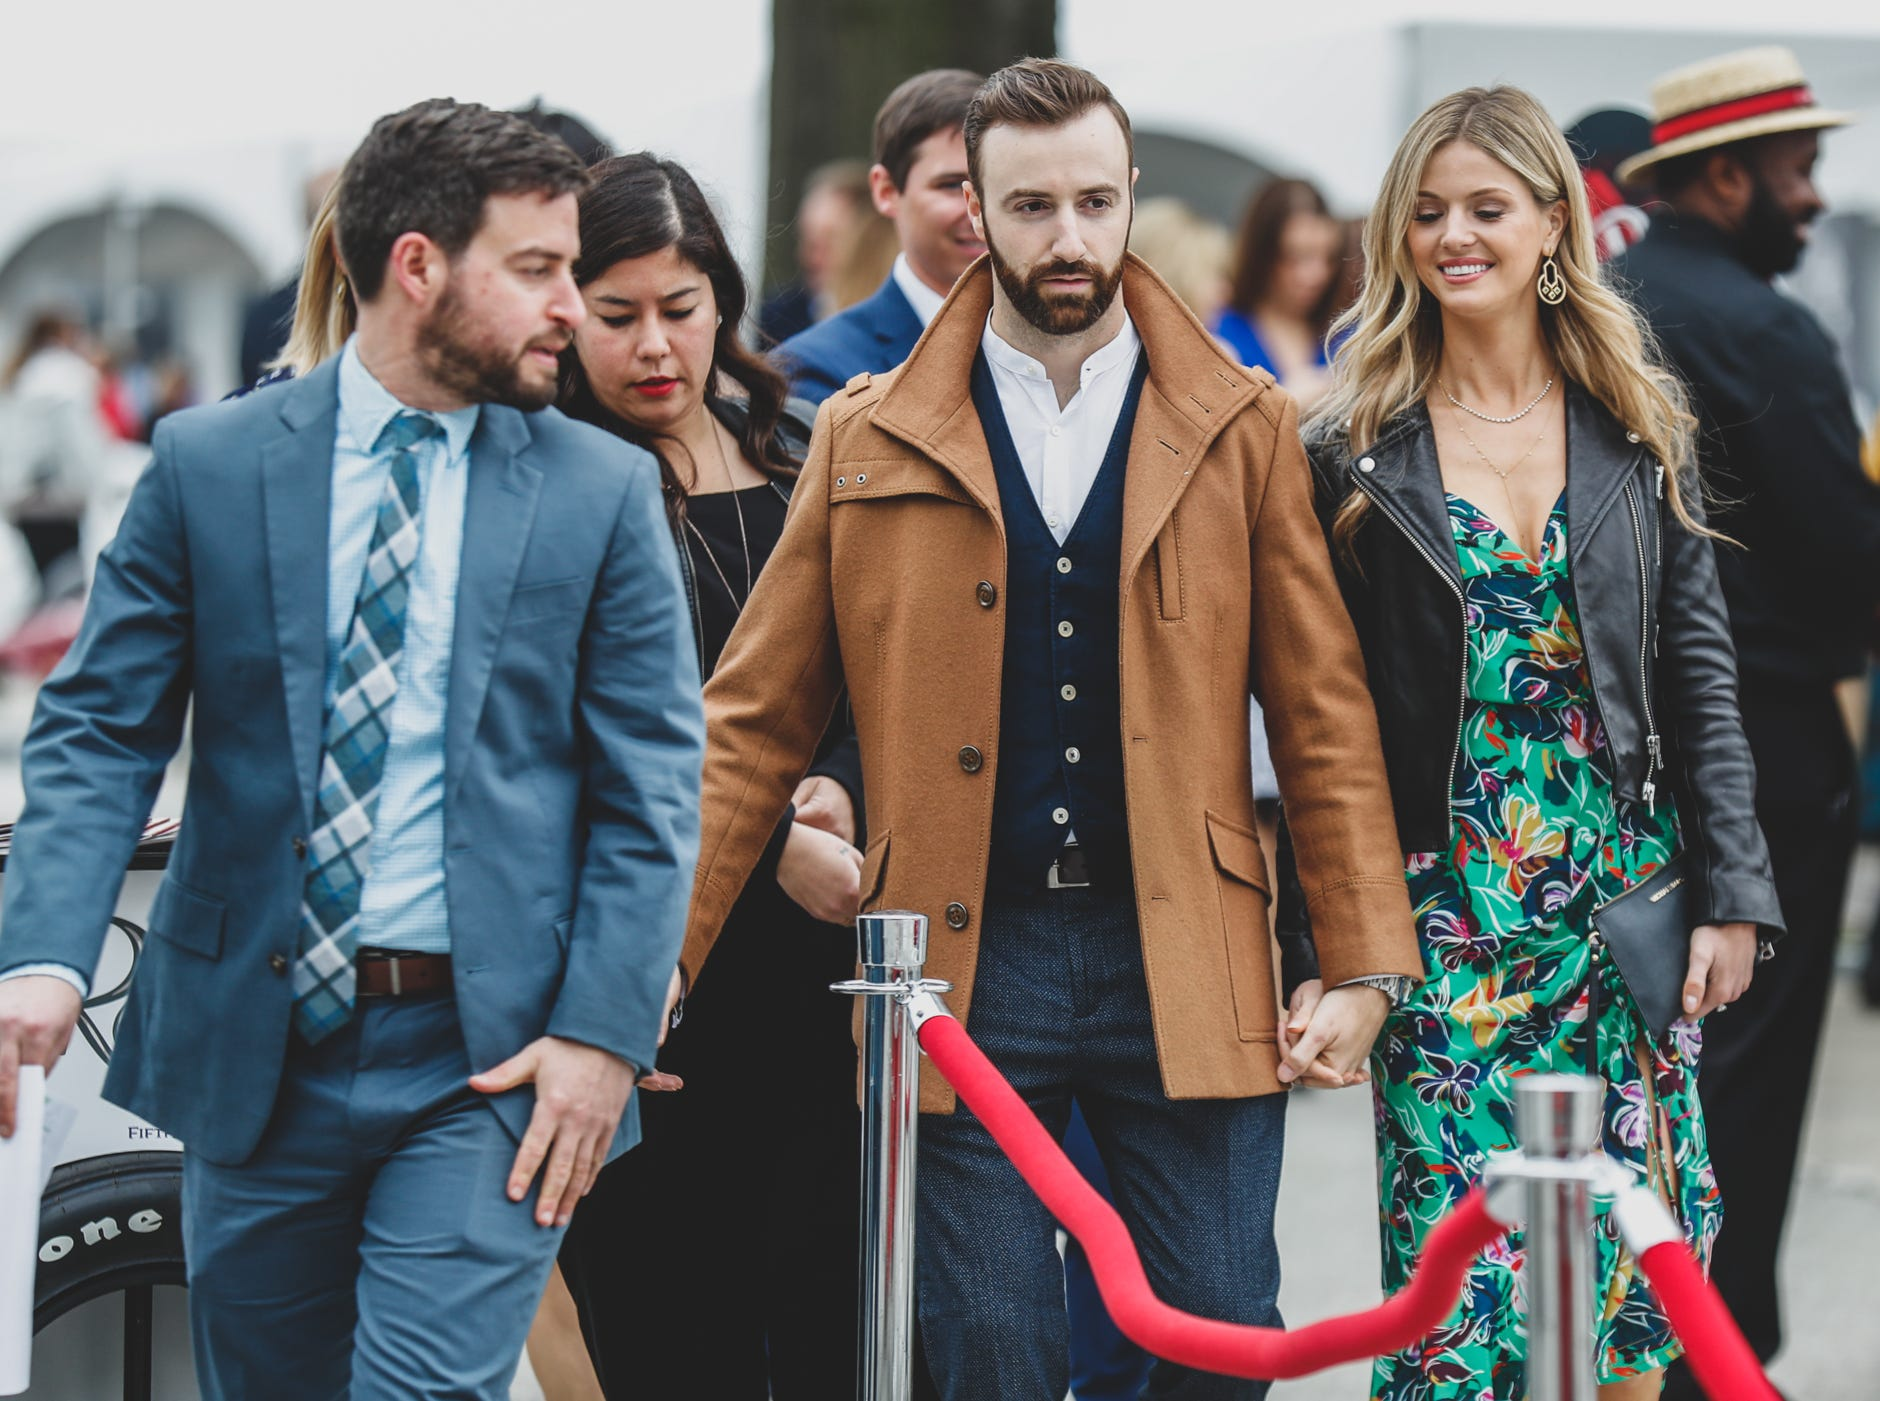 Guests dress to impres during the Rev Indy fundraiser, held at the Indianapolis Motor Speedway on Saturday, May 4, 2019. Funds raised support the IU Health Foundation statewide and the IU Health Emergency Medical Center at IMS.